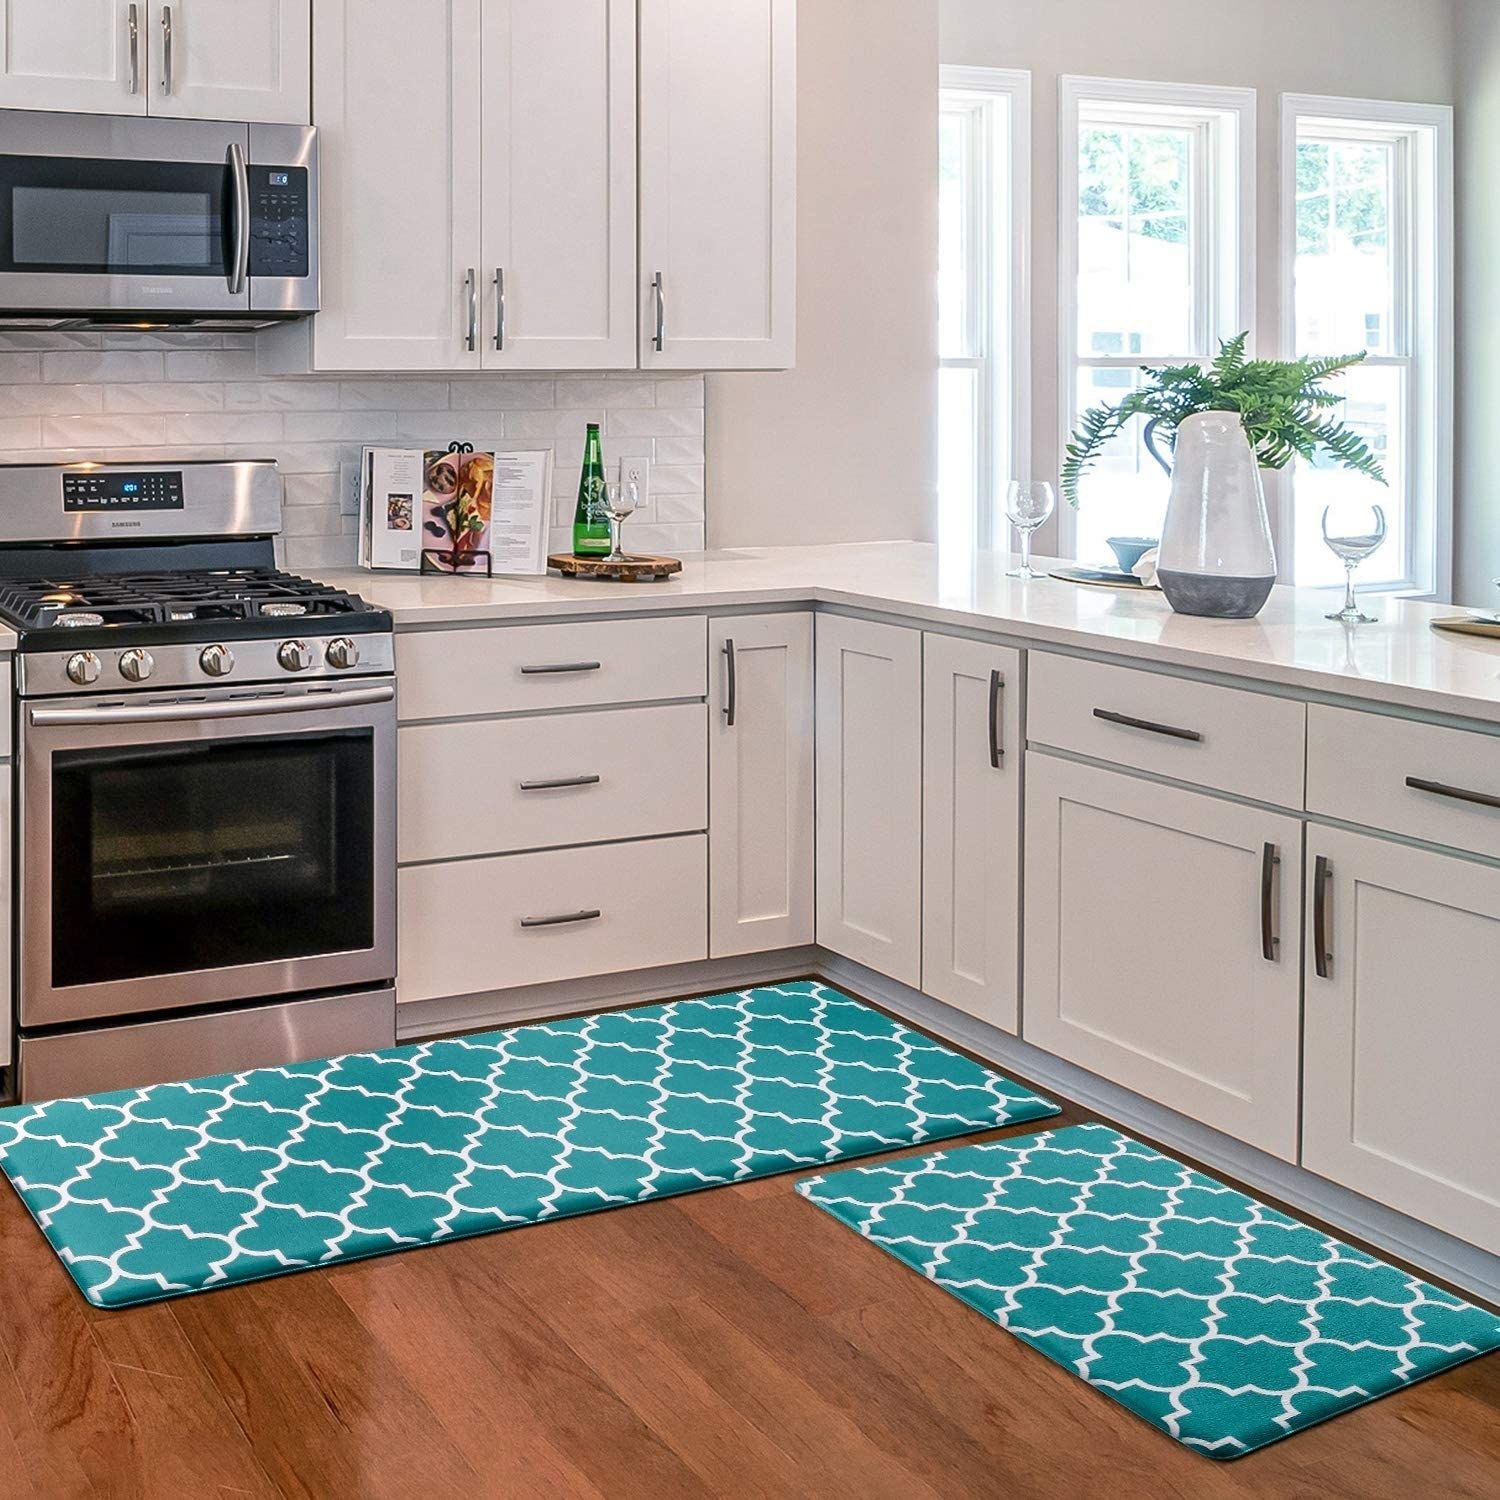 A set of anti-fatigue mats folks rave over because they're basically the comfiest ones out there, and they're wicked easy to clean: stuff wipes right off!